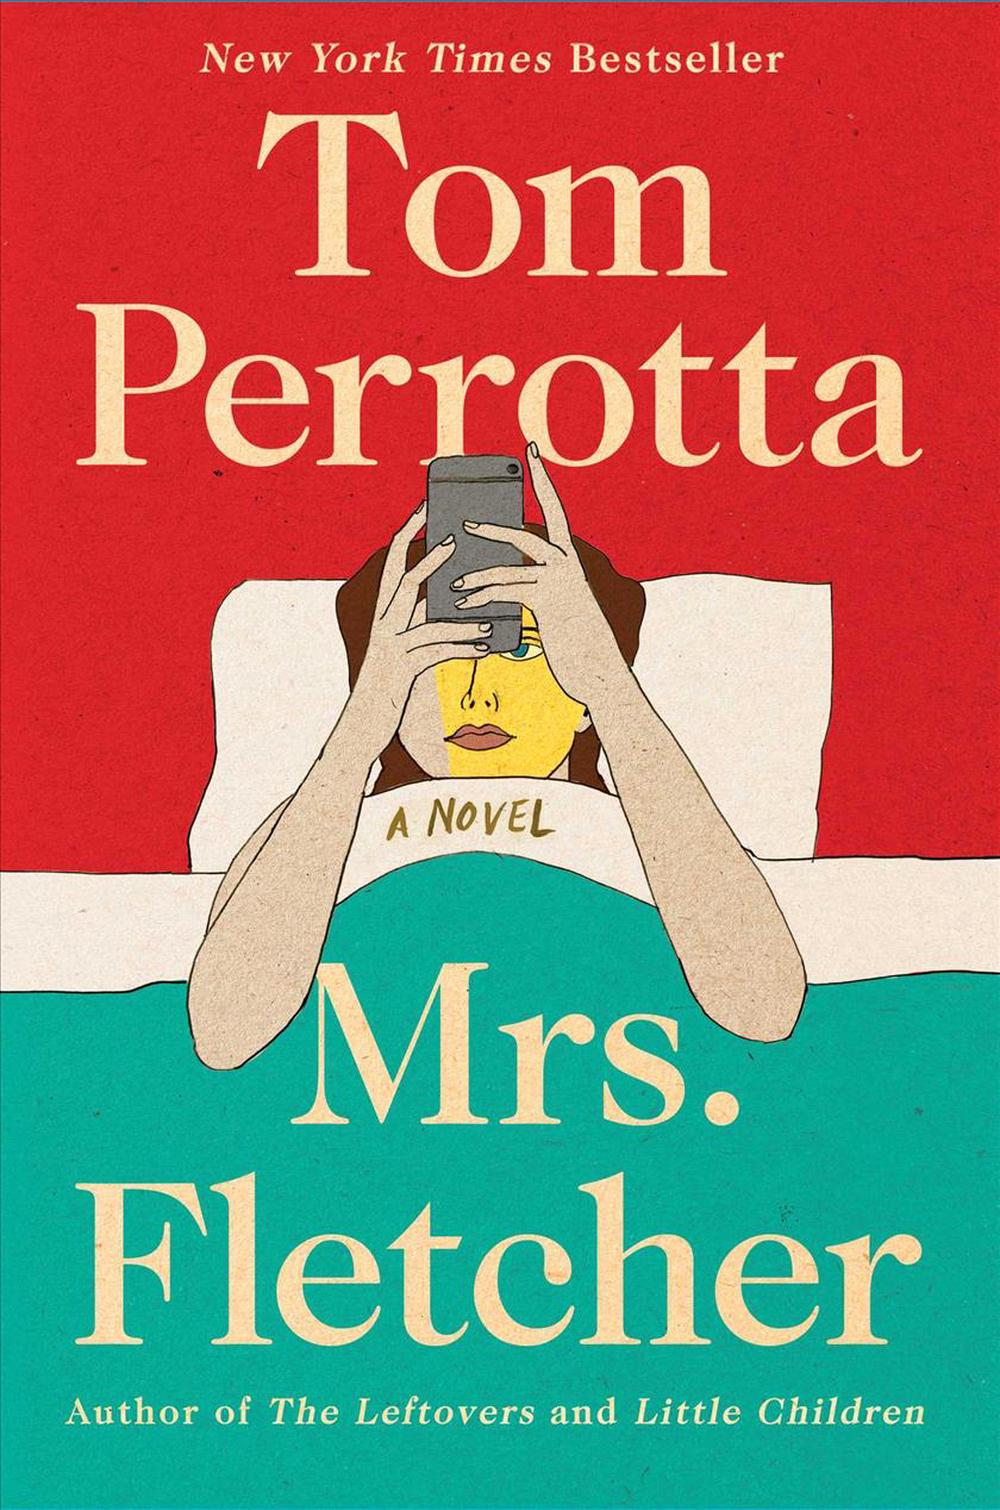 Mrs. Fletcher by Tom Perrotta, ISBN: 9781501144028